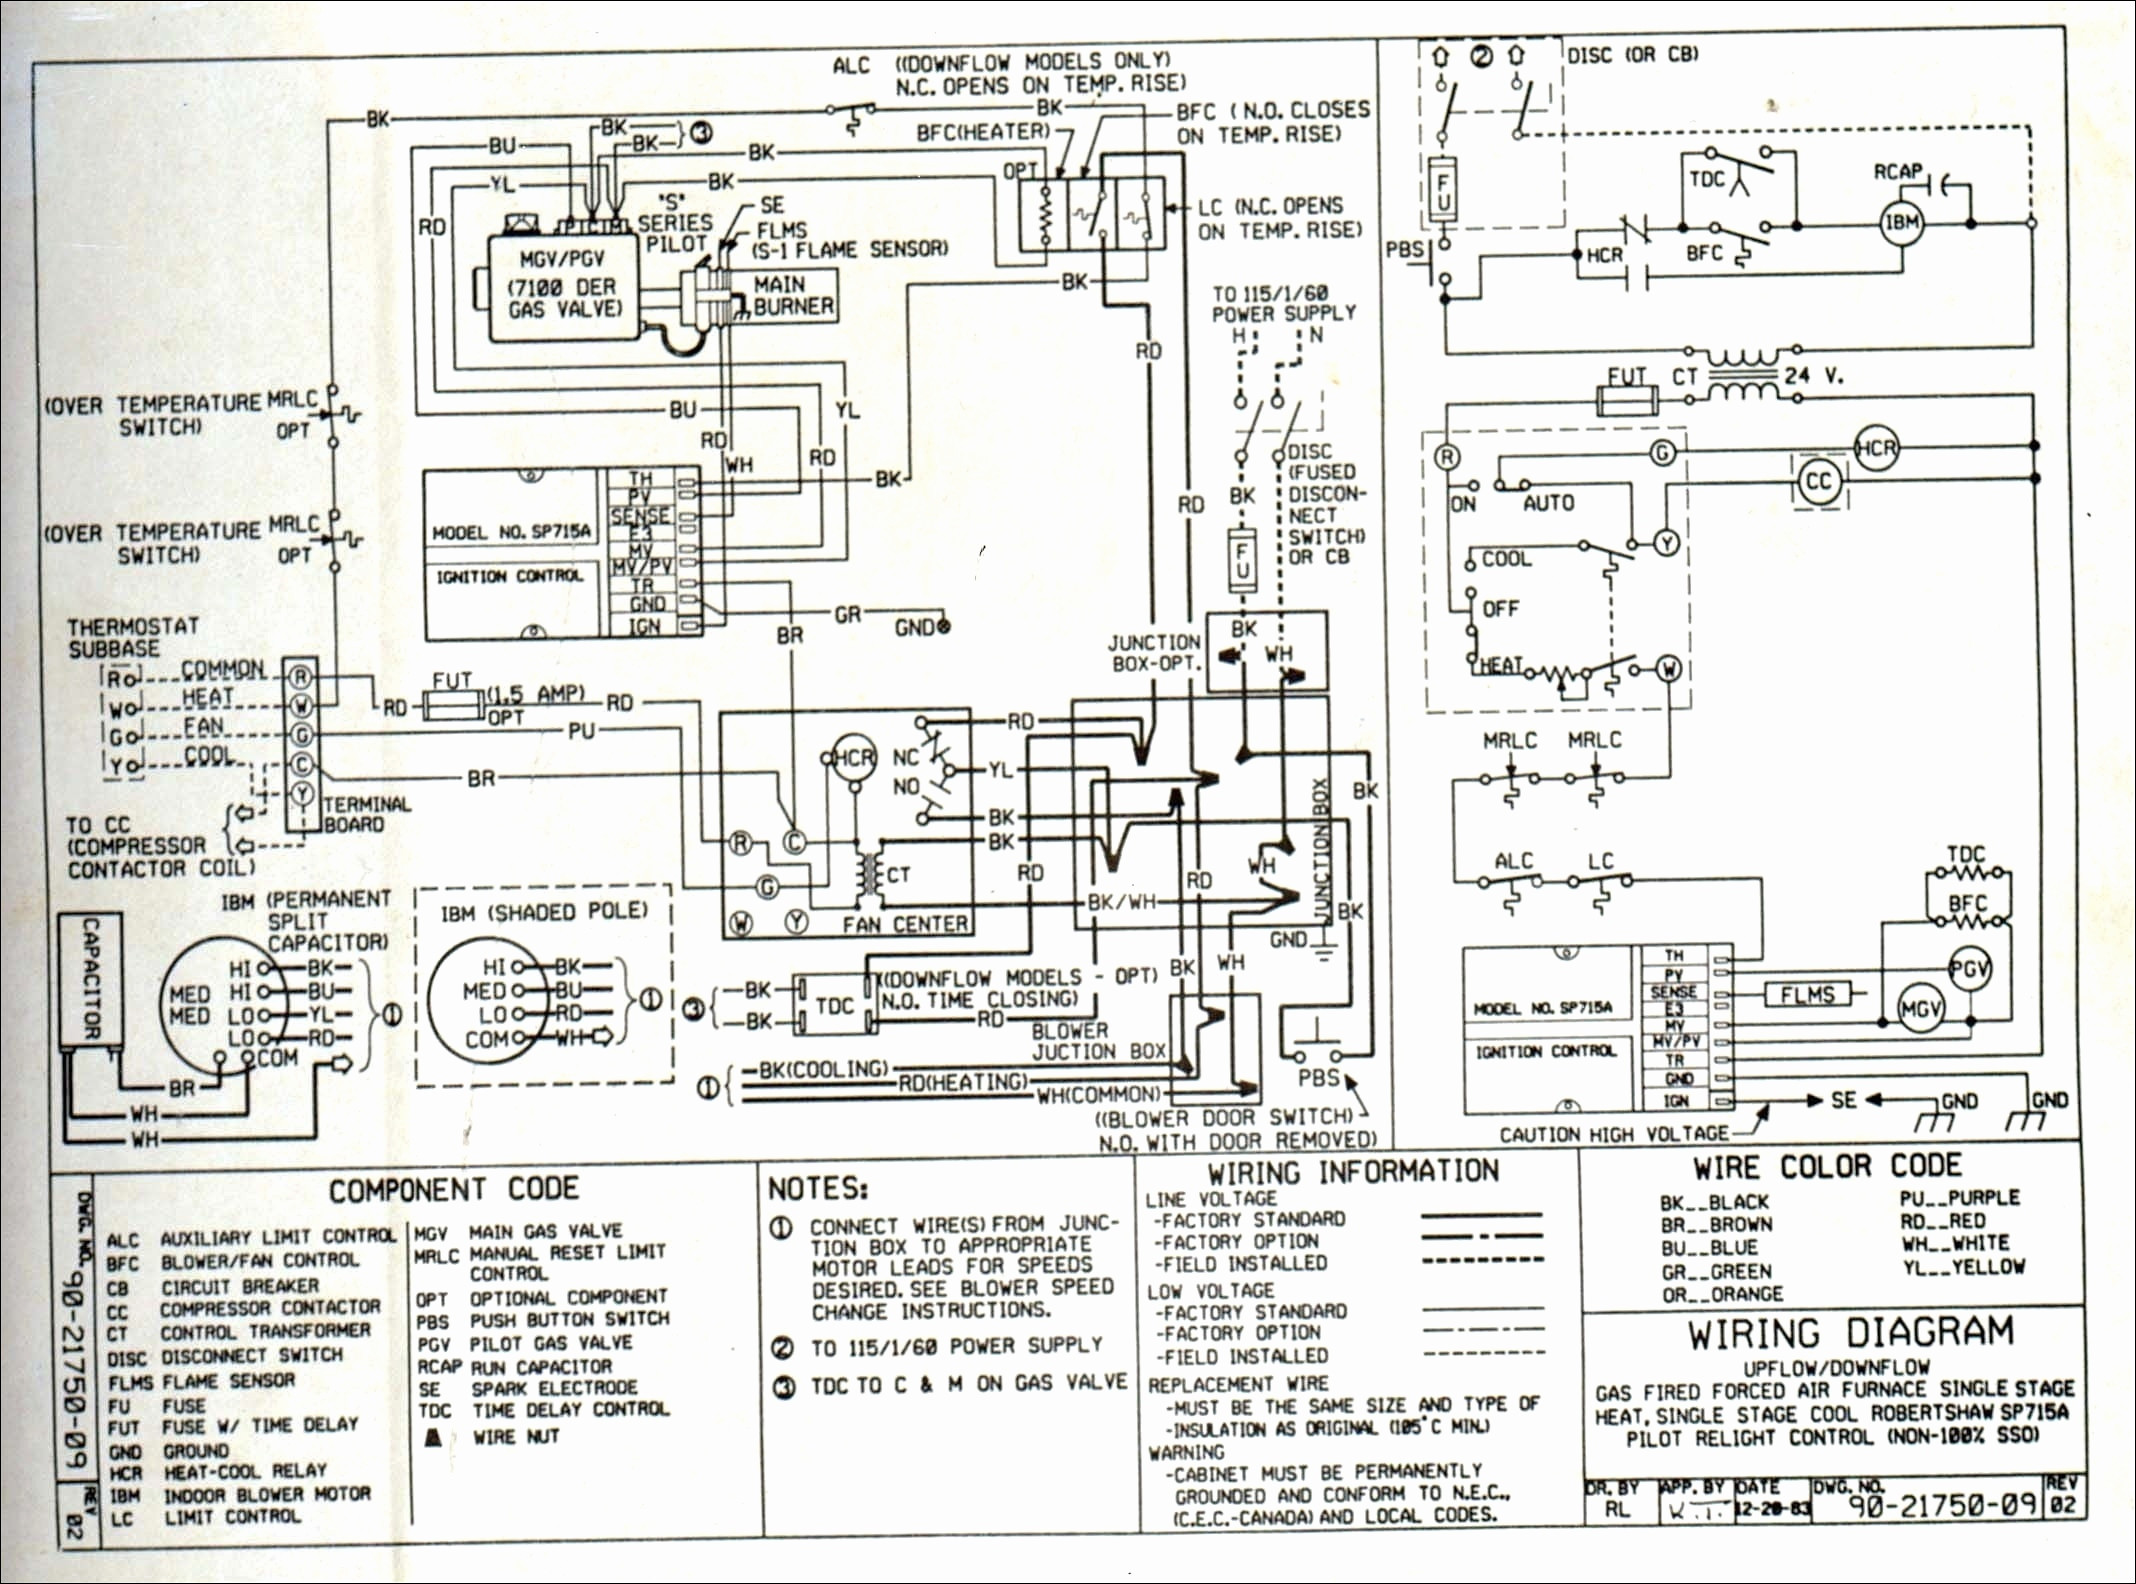 Asv 100 Wiring Diagram - Bms Network Wiring Diagram for Wiring Diagram  SchematicsWiring Diagram Schematics